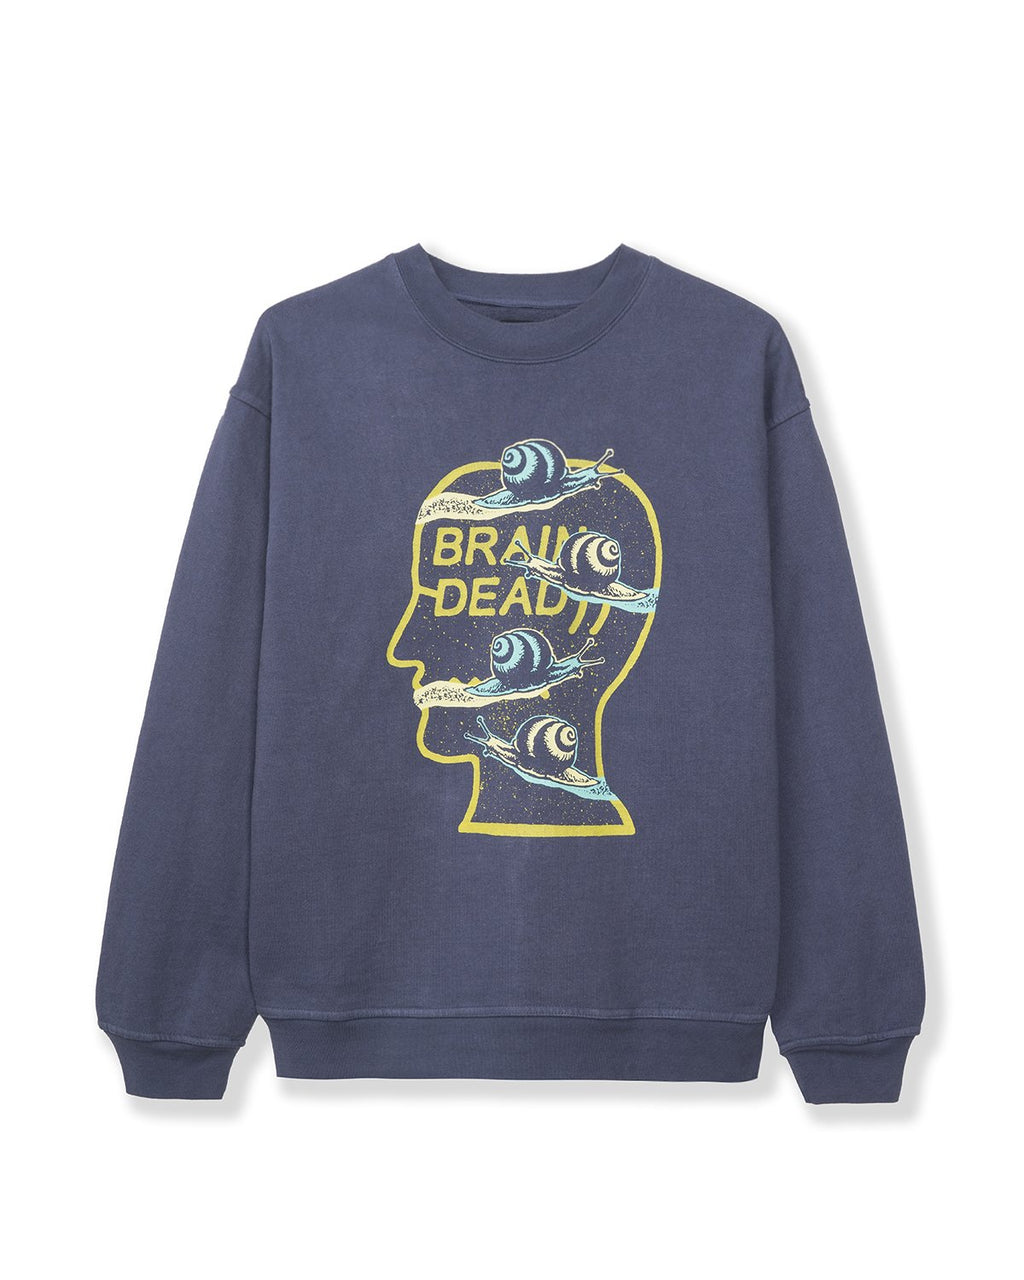 SNAIL TRAIL CREW NECK - WASHED NAVY